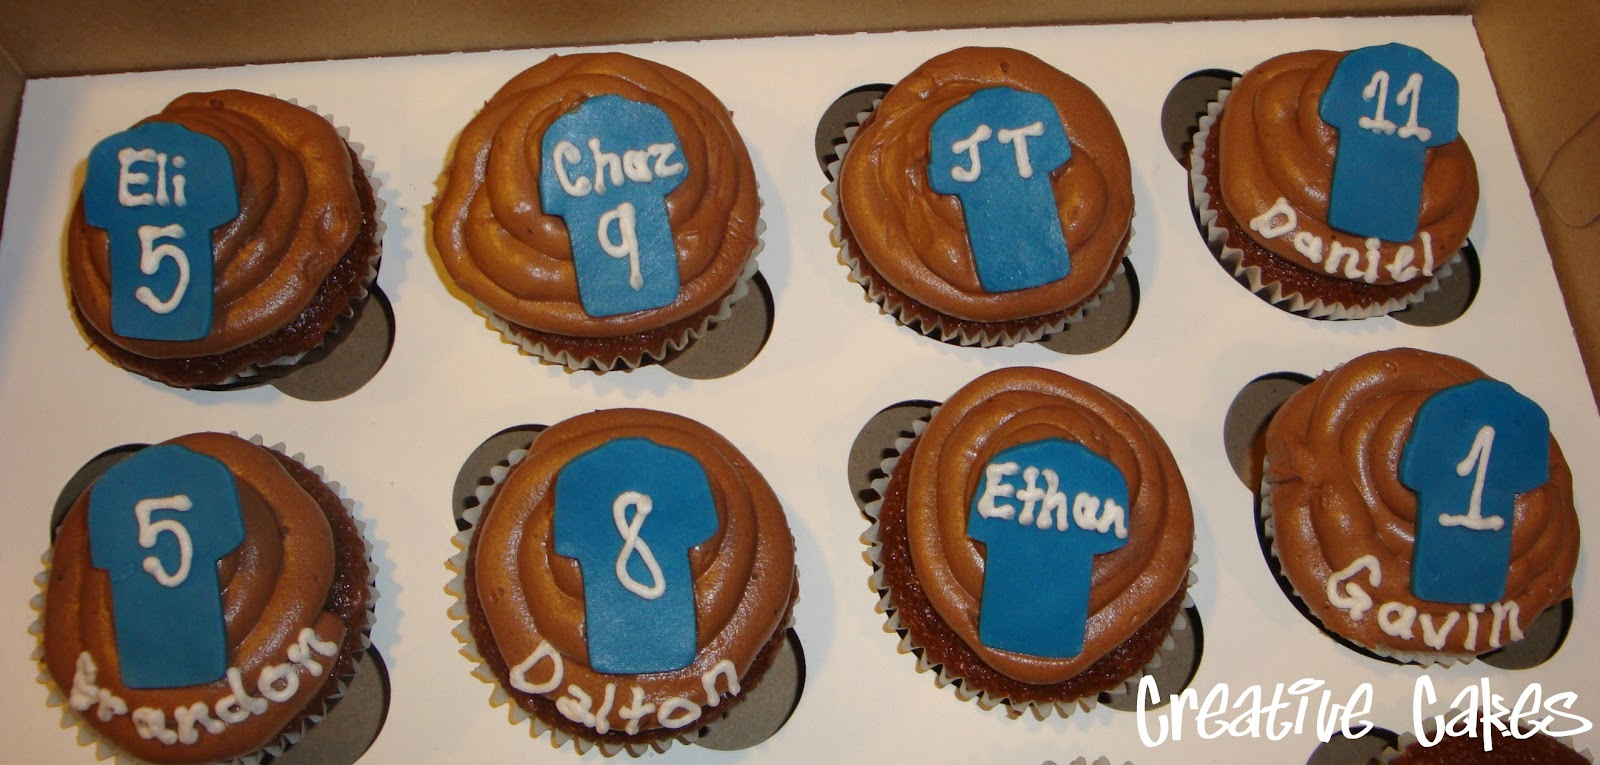 Creative Cakes Basketball Jersey Cupcakes And Cake